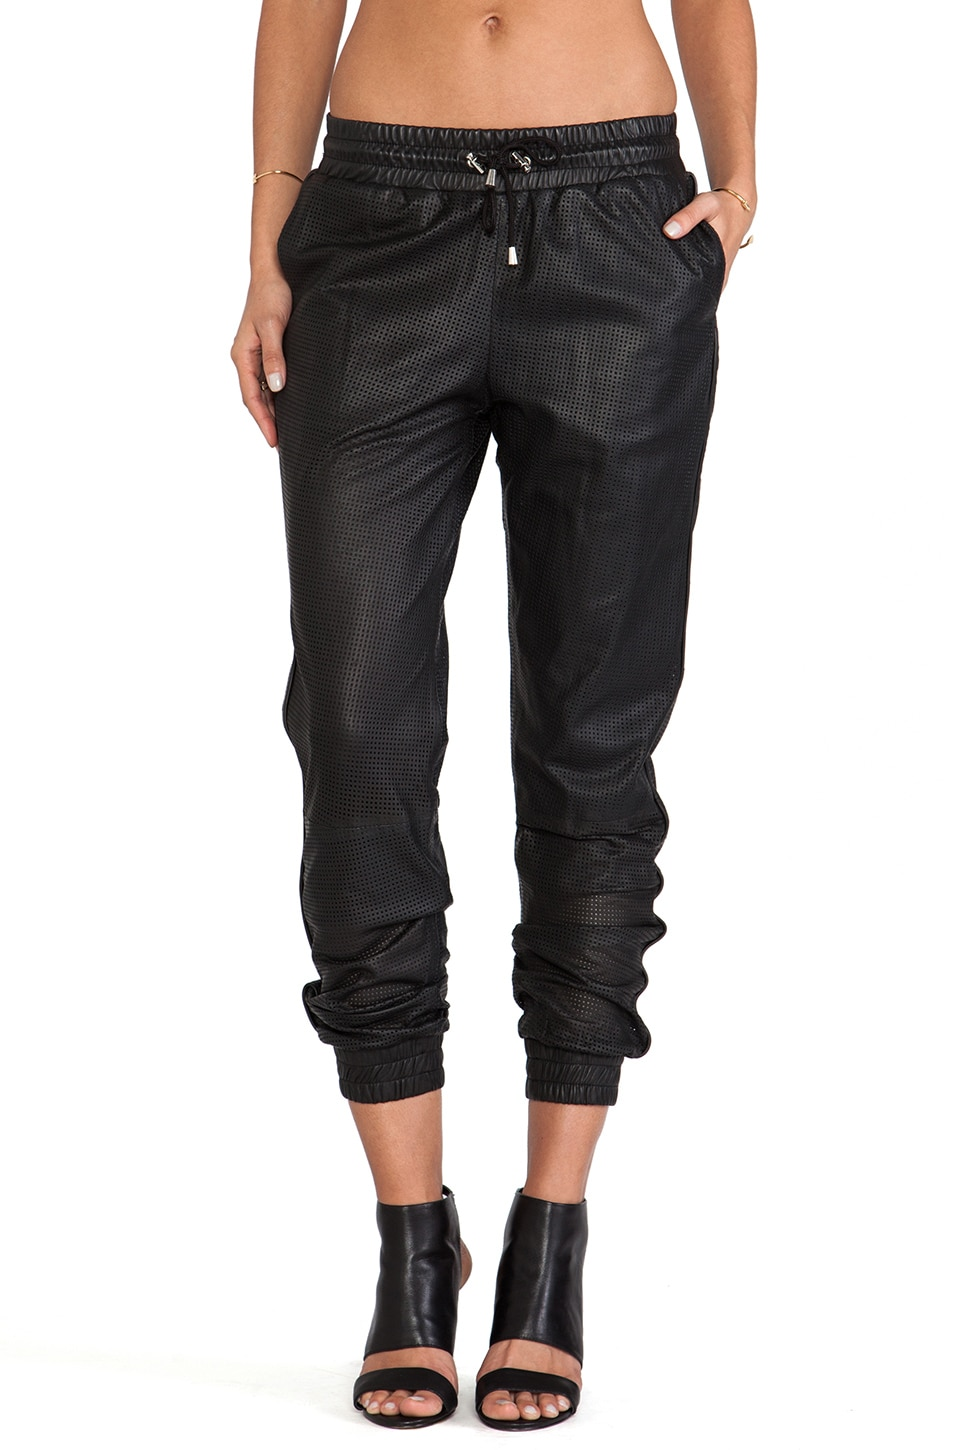 LaMarque Kylee Pant in Black